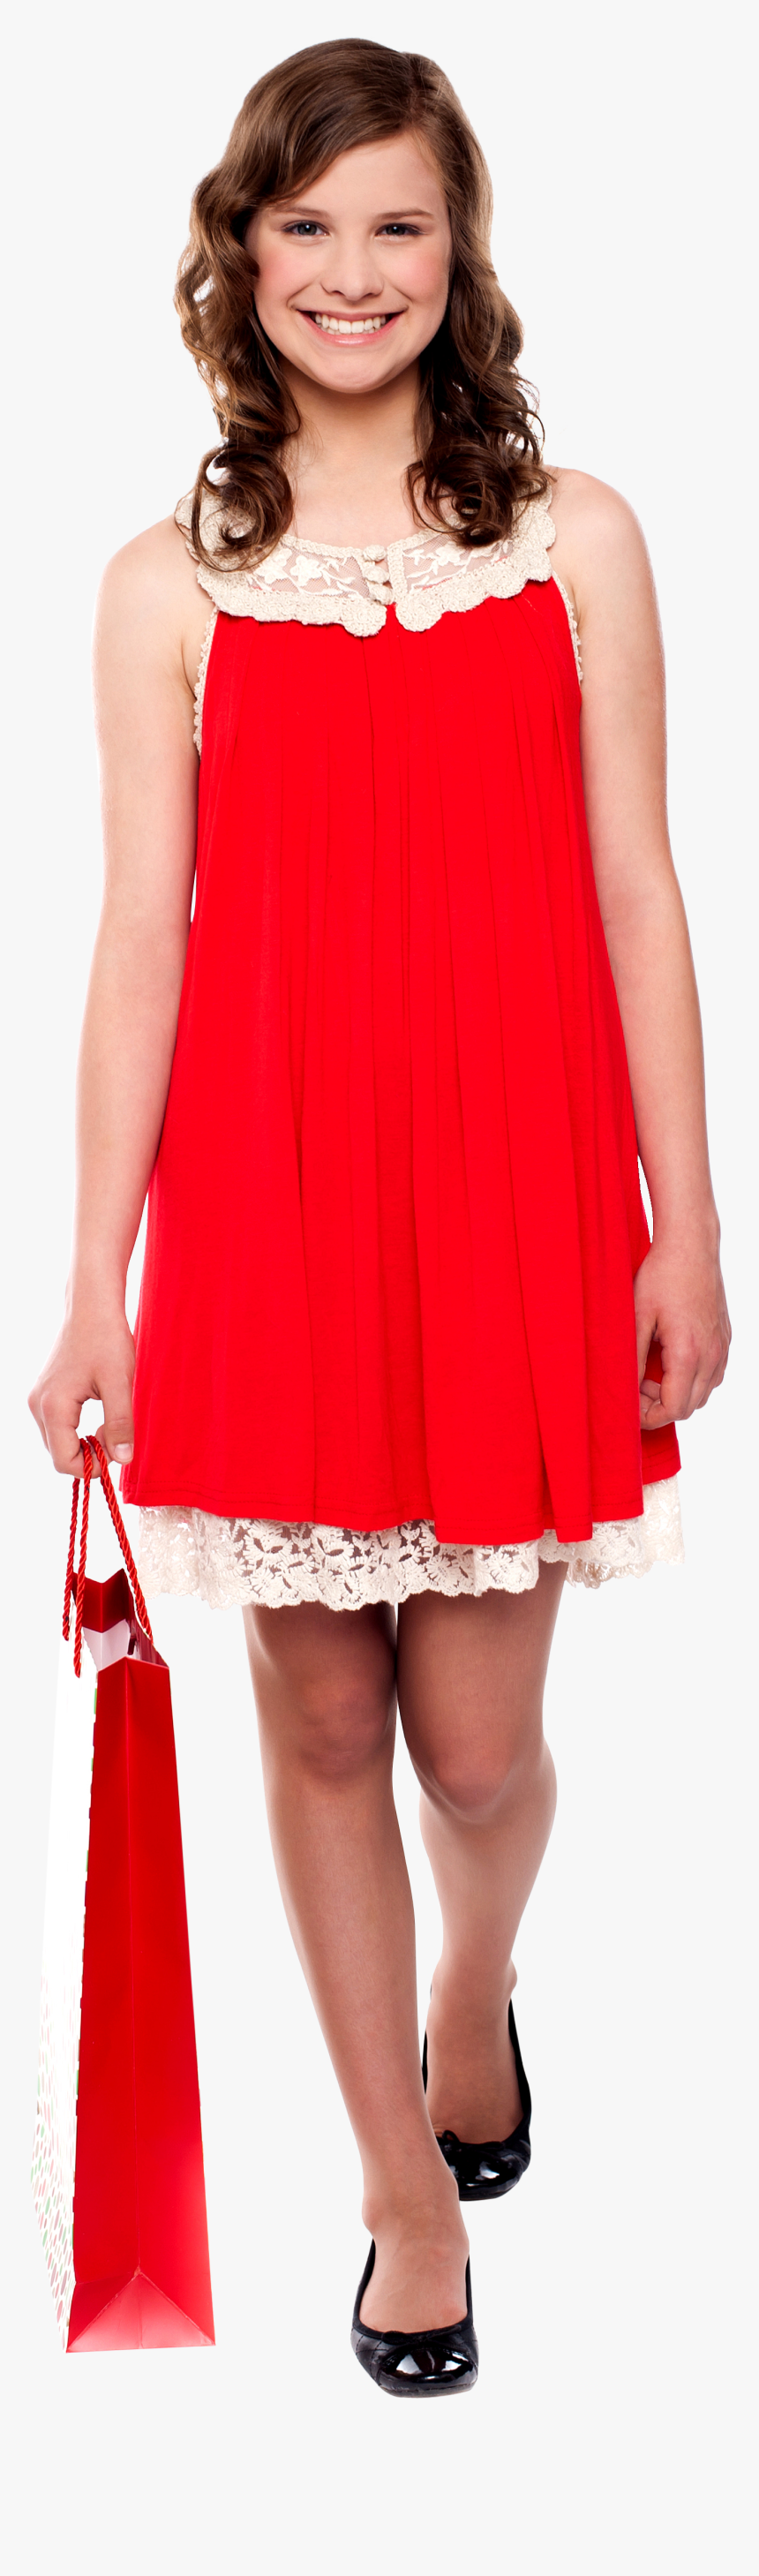 Women Shopping - Png High Quality Girl, Transparent Png, Free Download